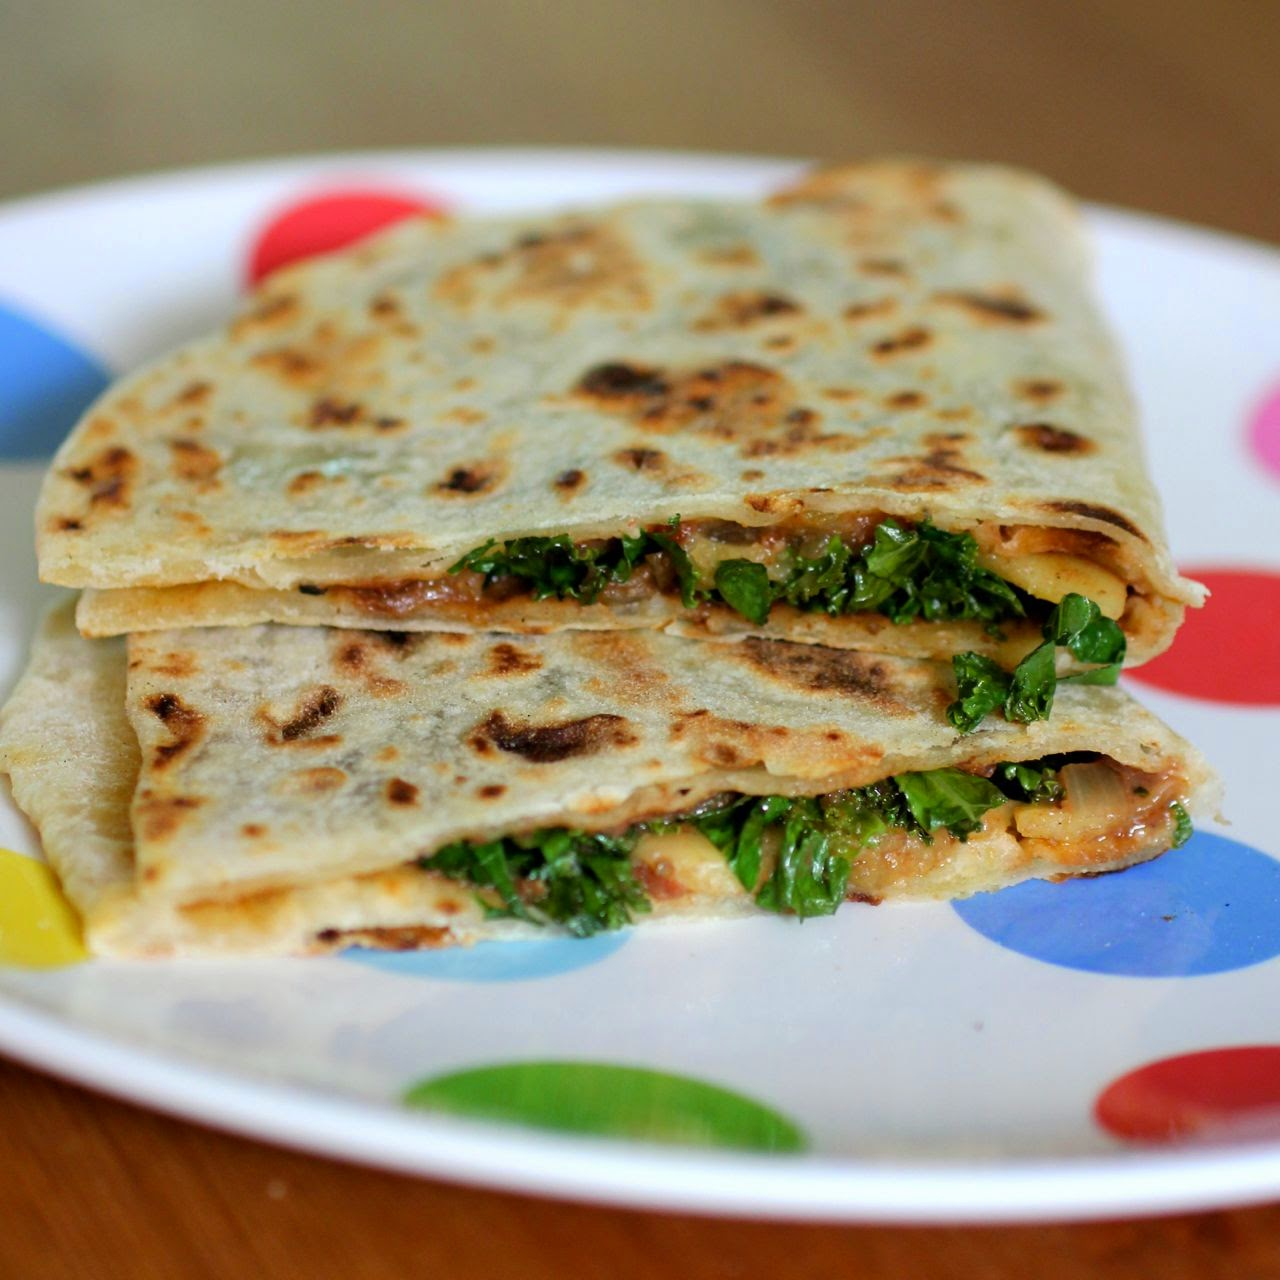 Green Gourmet Giraffe: Cheesey Kale Quesadillas with Mole Sauce and ...